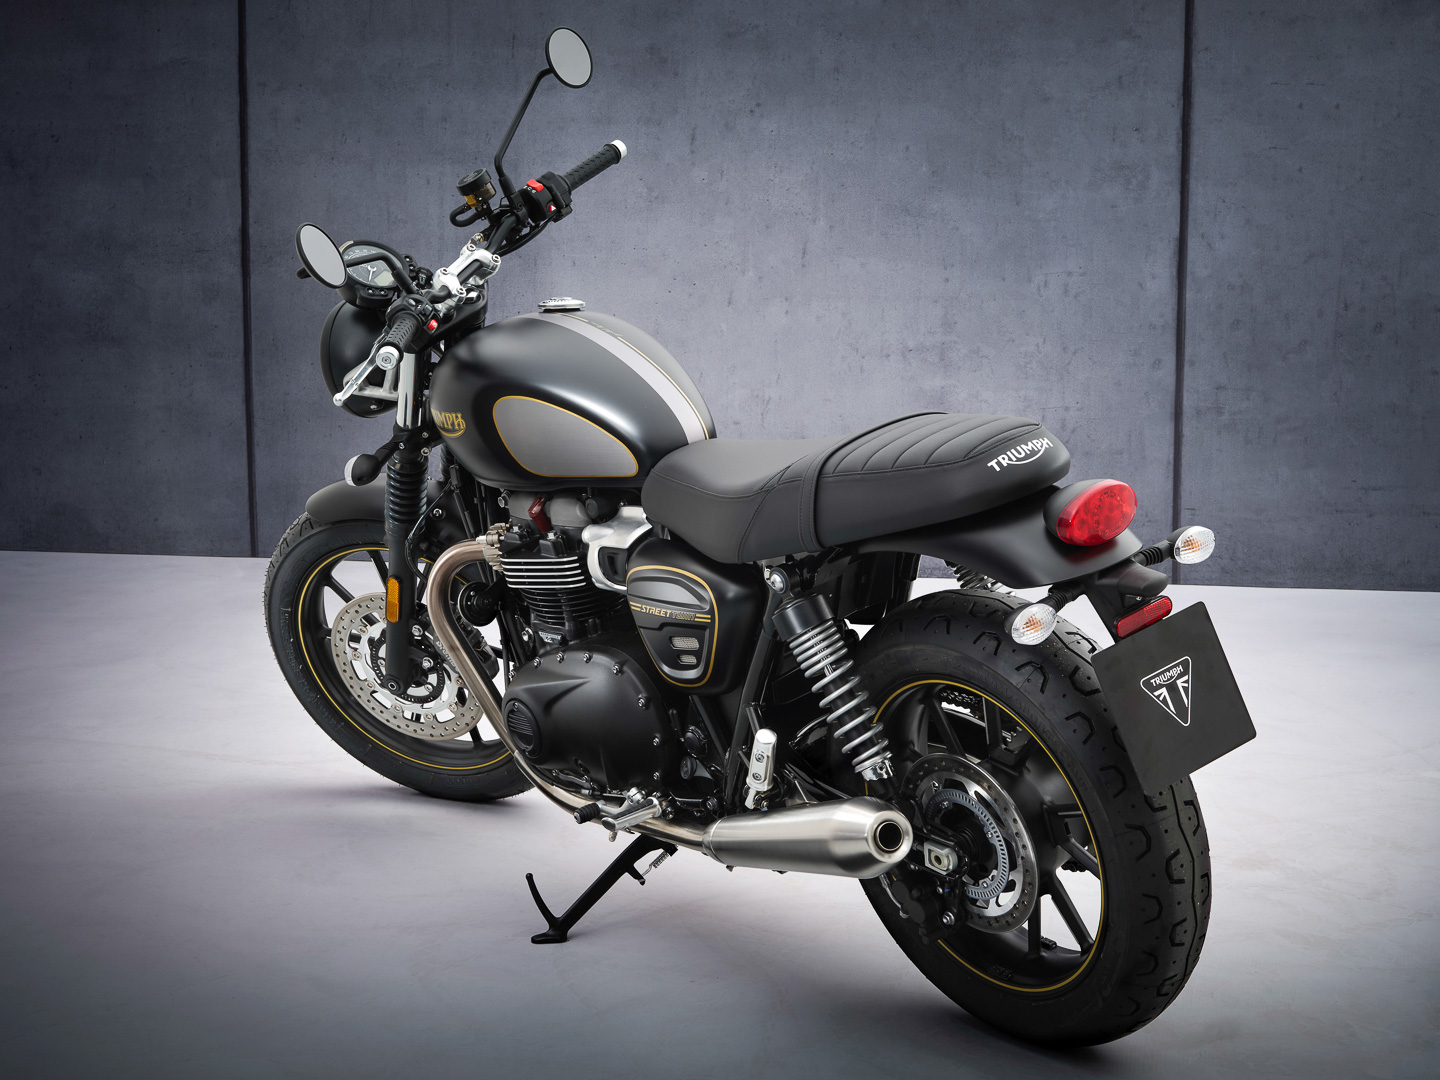 2021 Street Twin Gold Line Seat Height